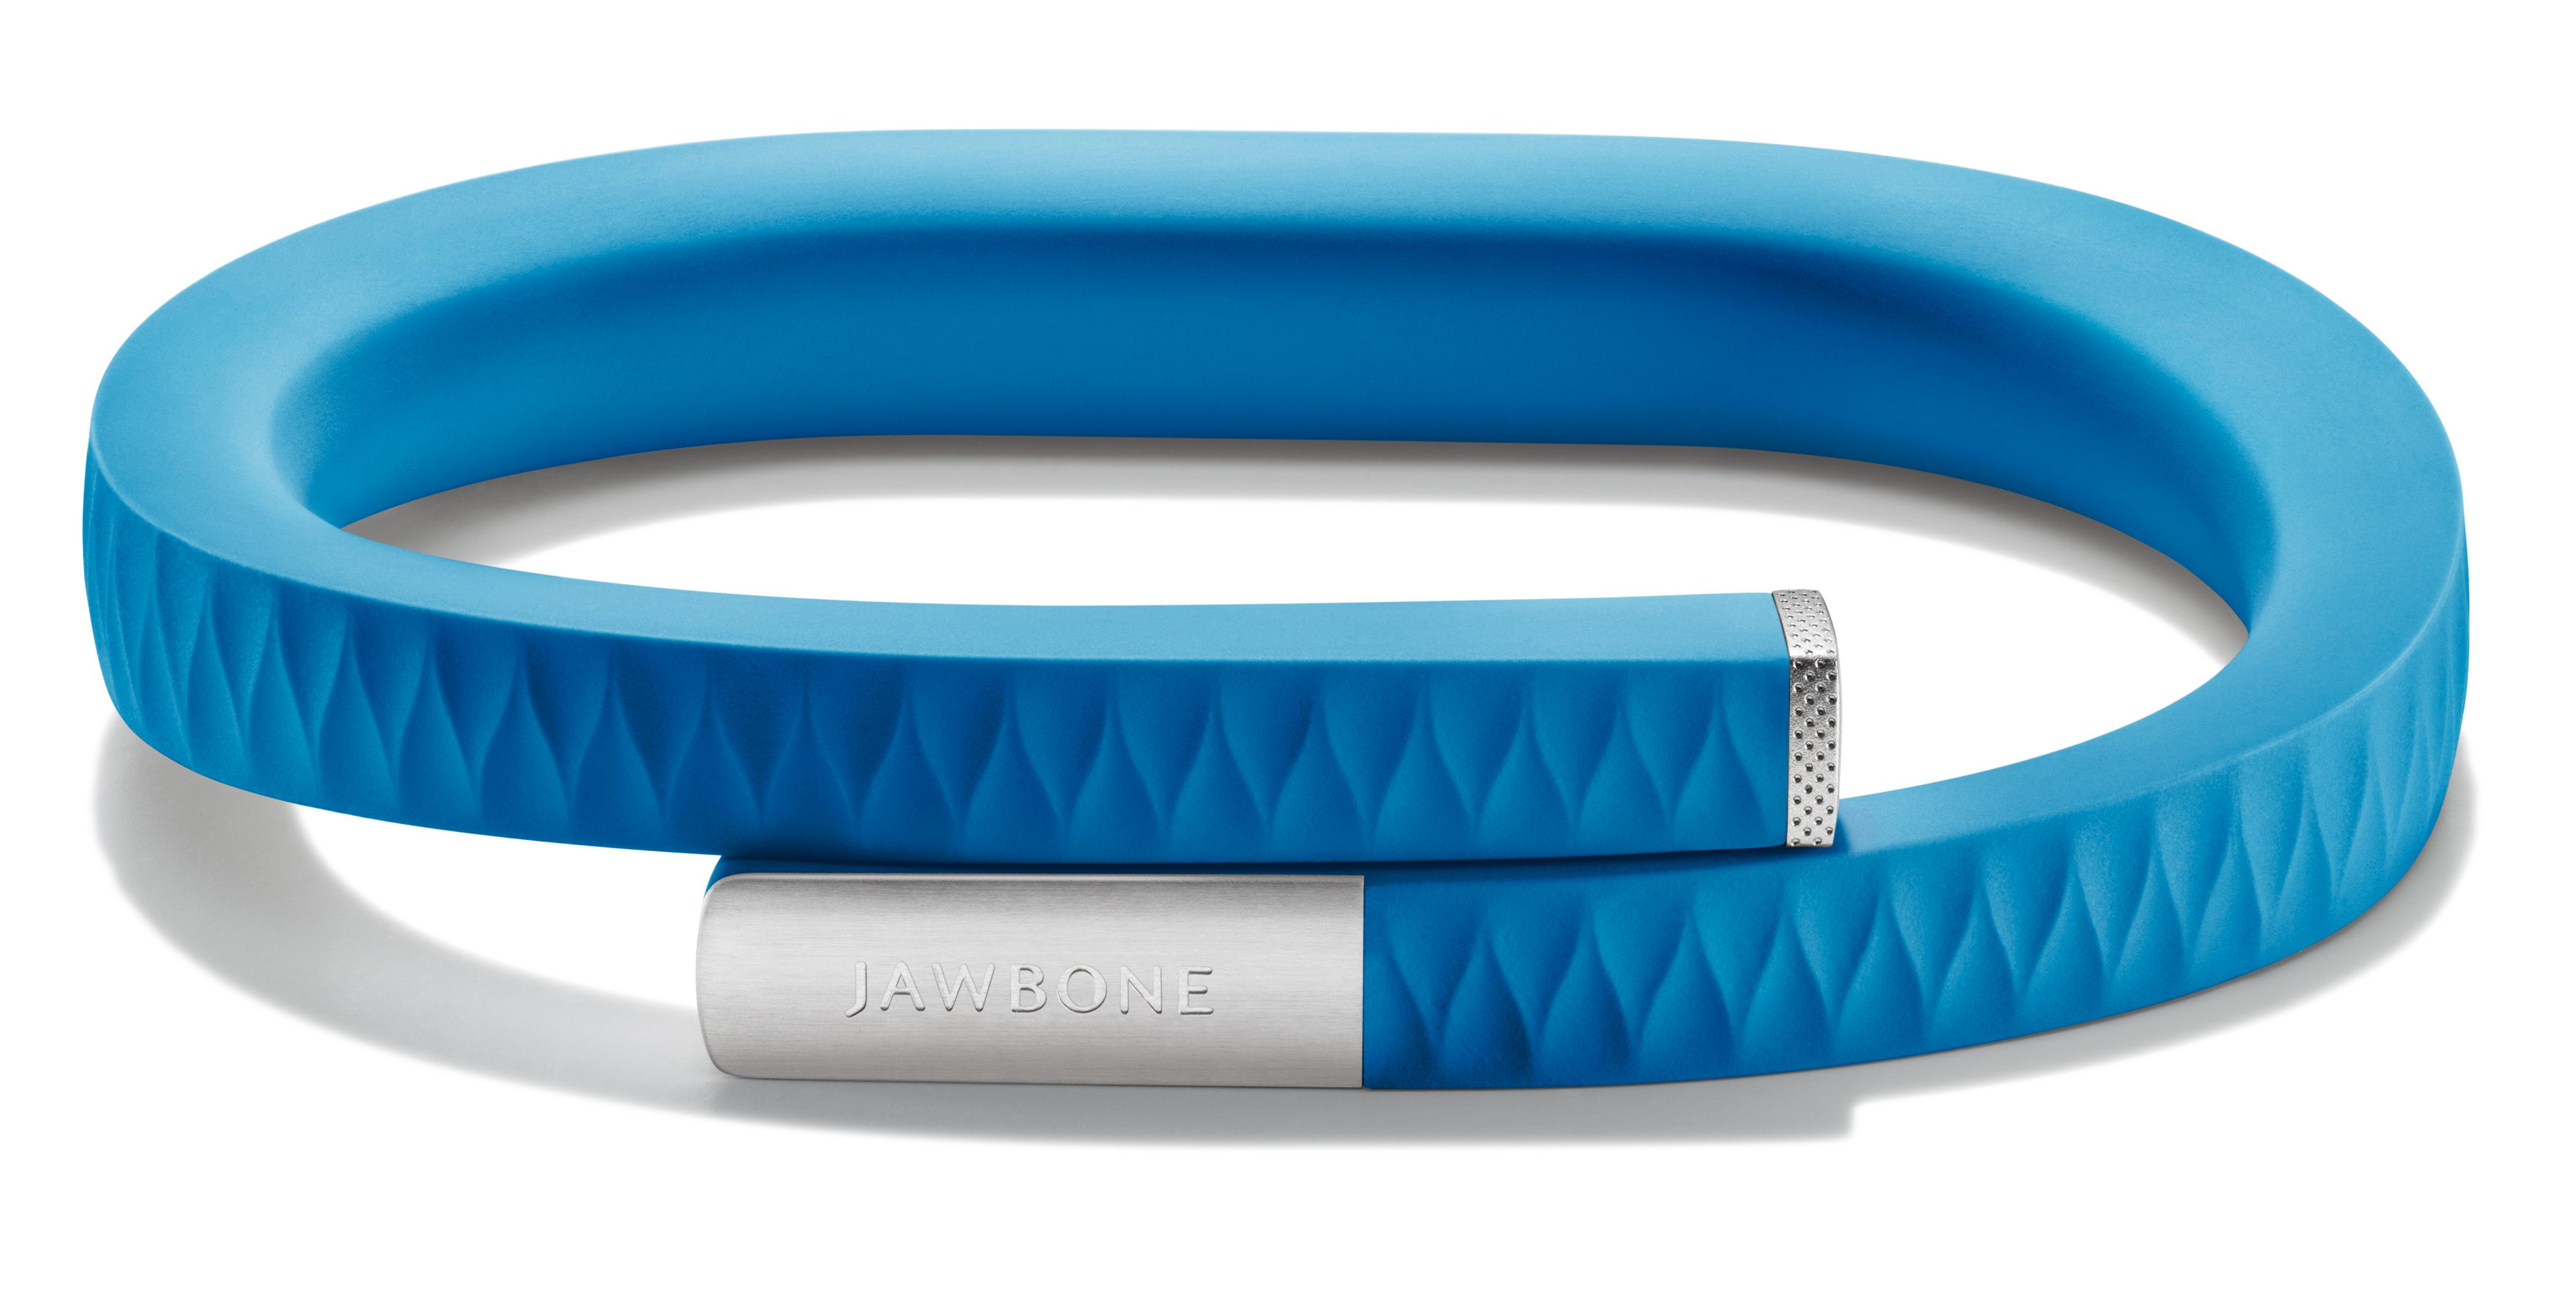 Jawbone Up Bluetooth Headsets Fitness Tracker Wearable Jawbone Up Health Articles Wellness